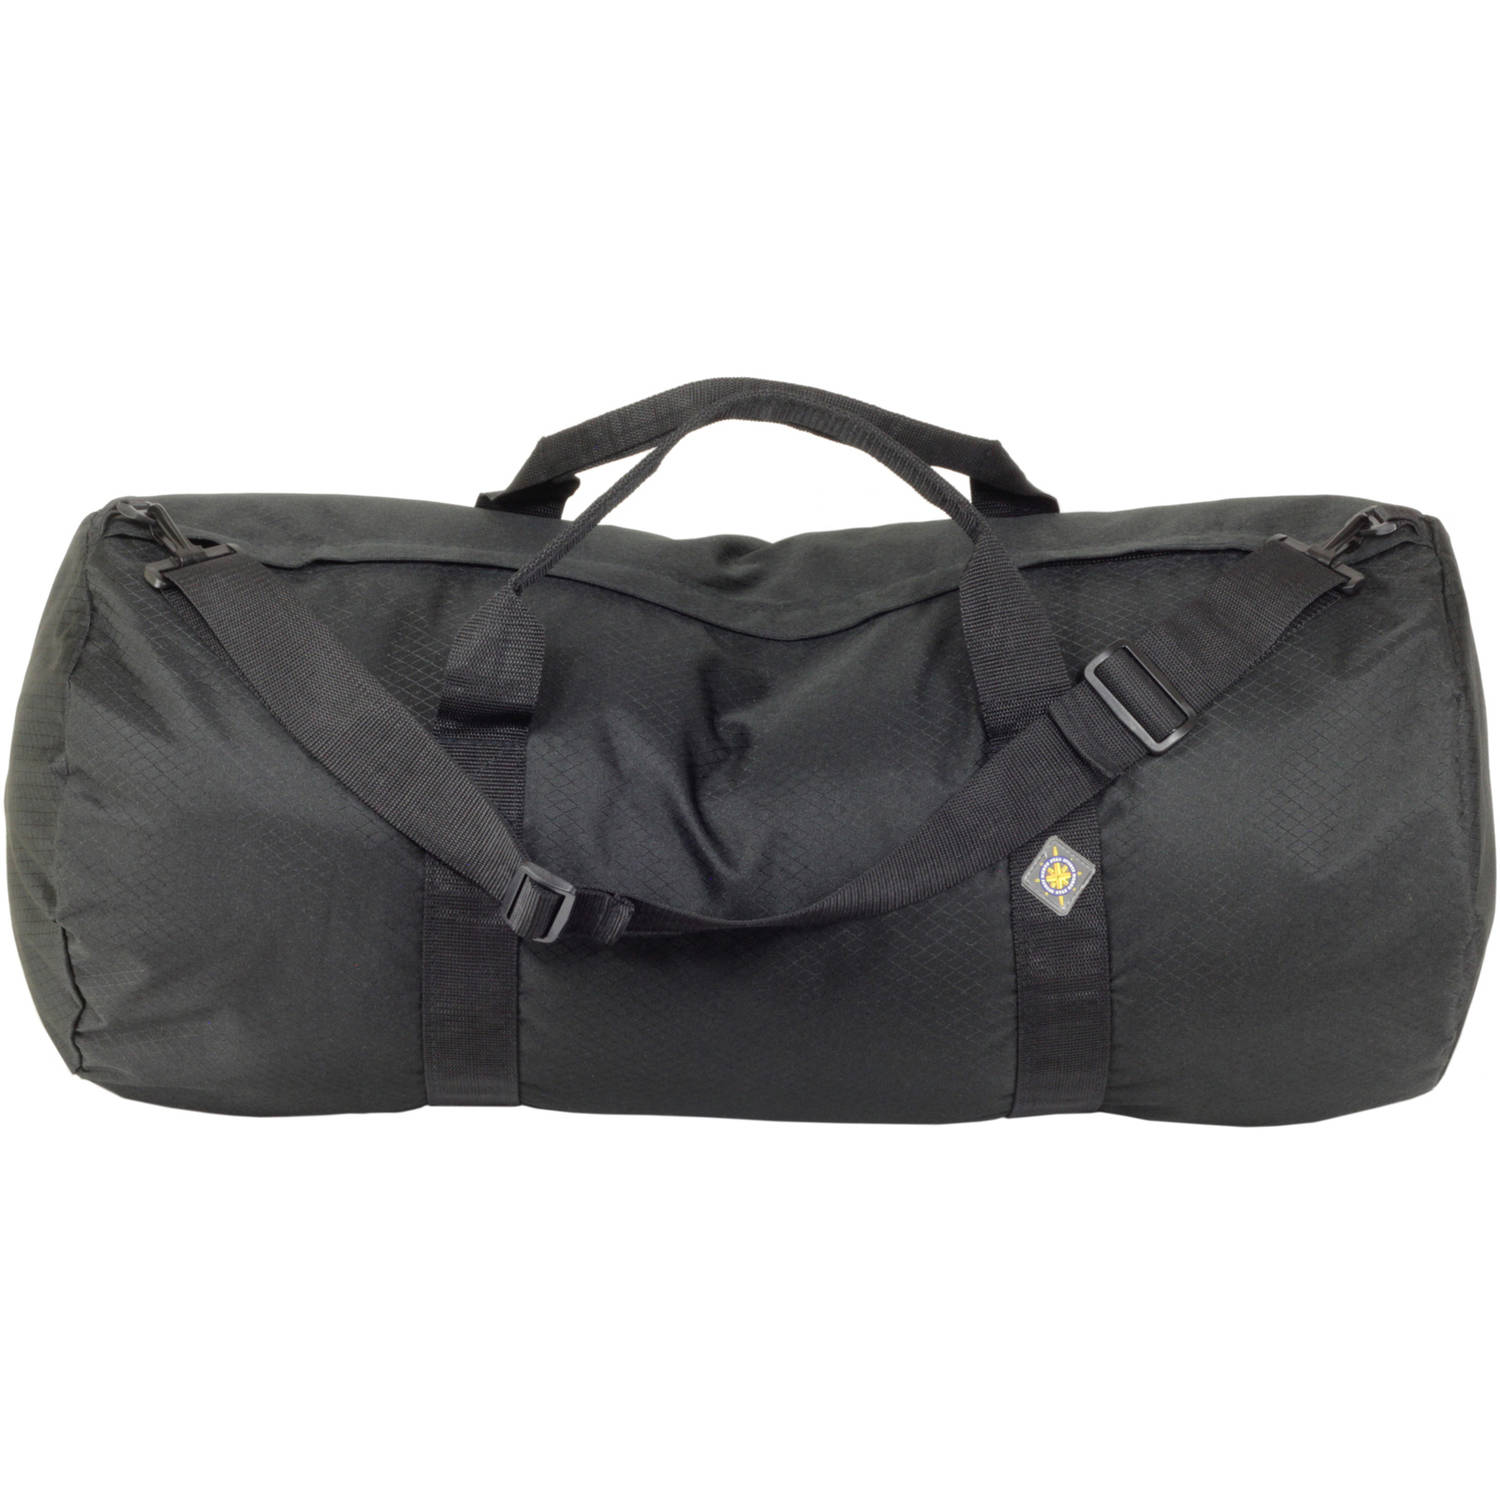 North Star 1430 Sport Duffle Bag, Midnight Black by Northstar Bags